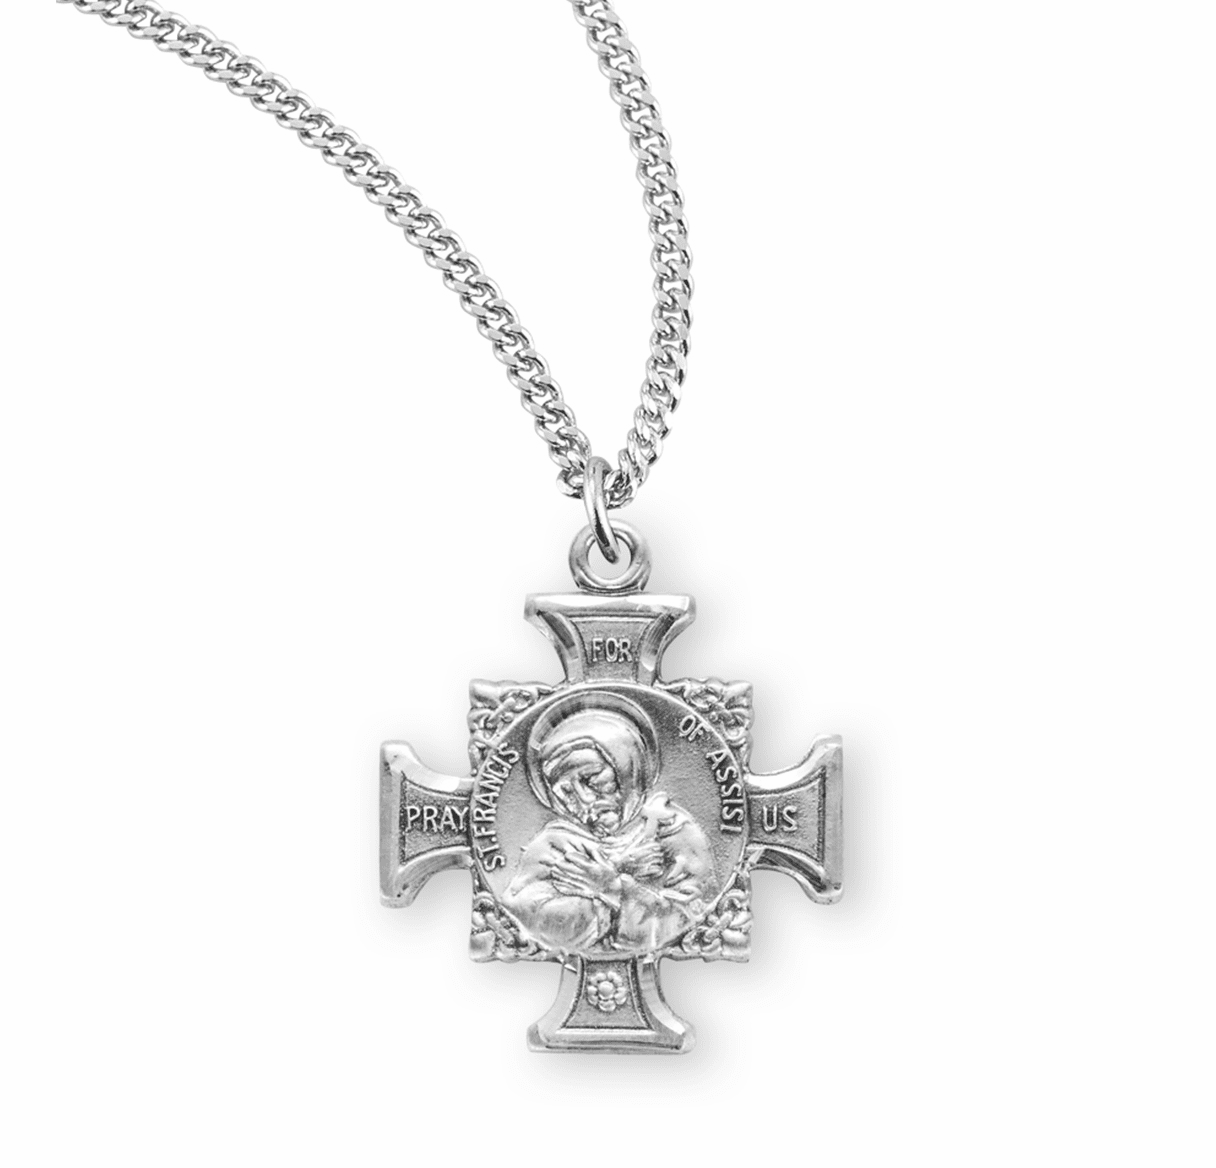 HMH Religious St Francis and St Anthony Sterling Silver Maltese Cross Necklace